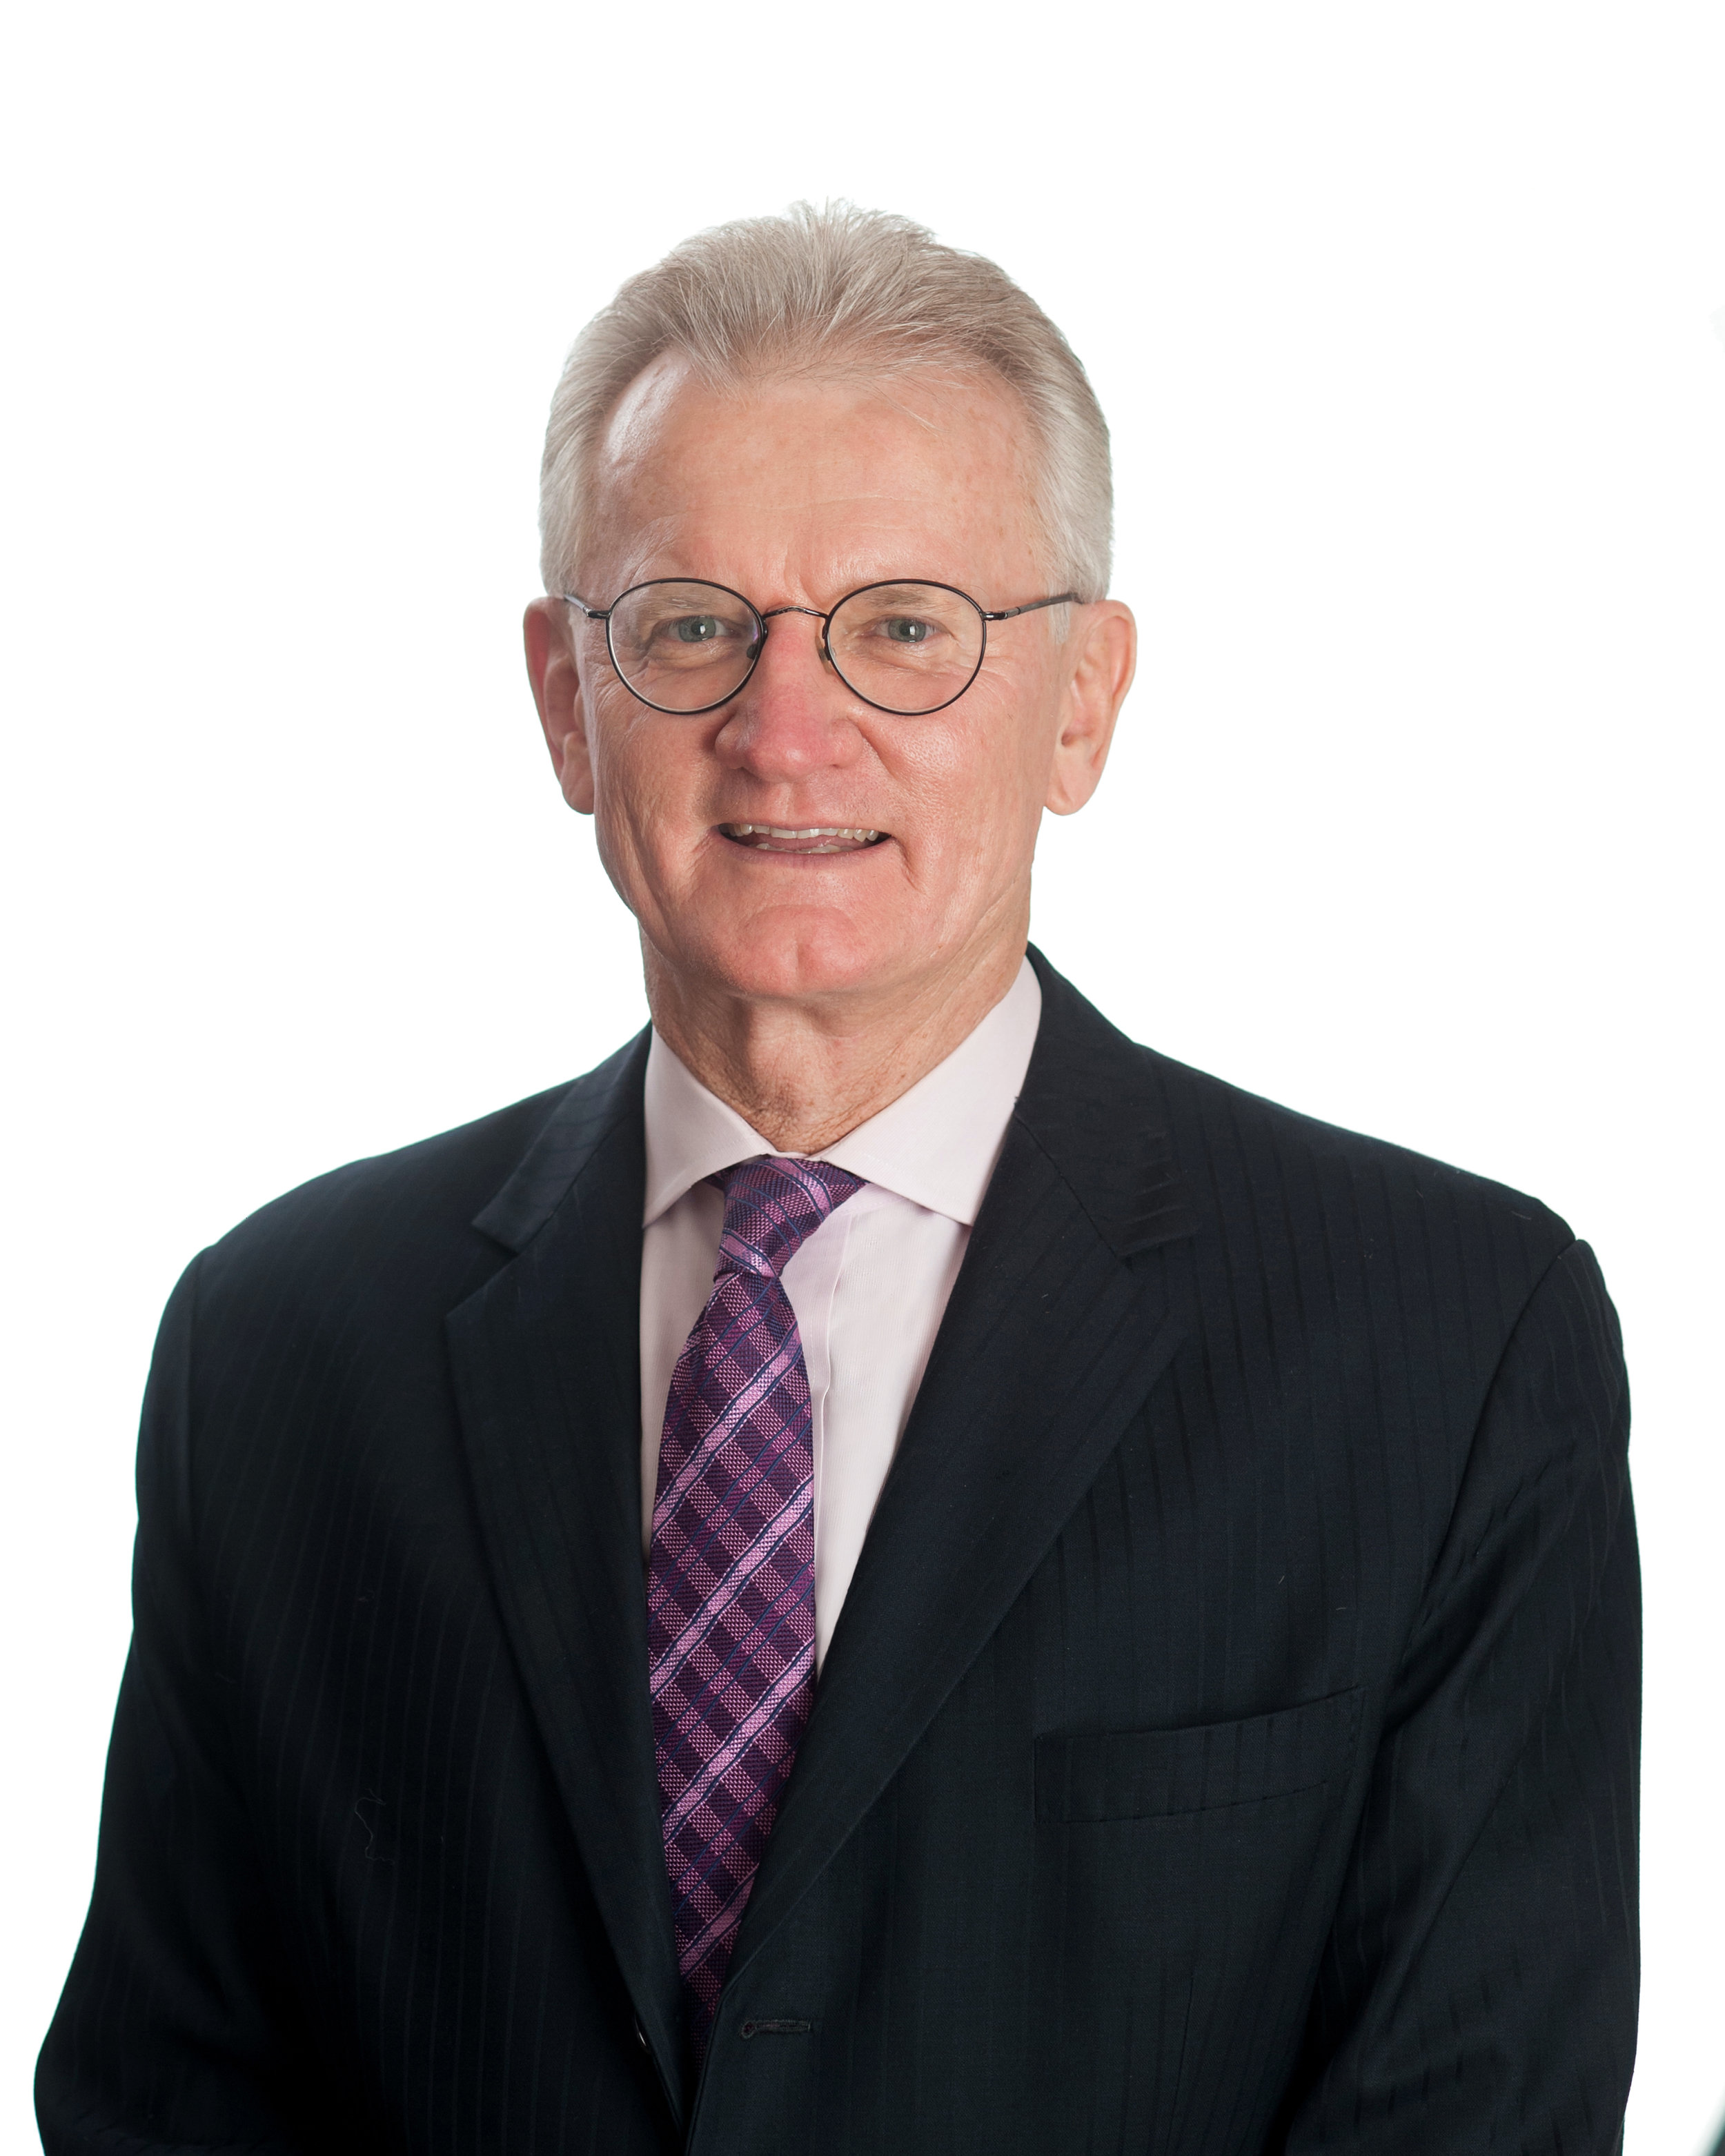 A/PROF William Glasson - AO, MBBS, FRANZCO, FRACS, FRCOPHTH, FRACGP (HONS), DIP APPSC(QPH)Dr Glasson is a general ophthalmologist with special interests in refractive surgery and ocular oncology. Having graduated from the University of Queensland in 1980, Dr Glasson then completed his residency at the Princess Alexandra Hospital and the Mater Hospital. He undertook postgraduate training in London in areas including ocular oncology as well as lid and lacrimal pathology.Dr Glasson leads ophthalmology clinics at Longreach, Winton, Barcaldine and Blackall. He also provides outreach services to both Australian indigenous communities and in East Timor. He is a former President of the Australian Medical Association and the Royal Australian and New Zealand College of Ophthalmologists. Furthermore, he holds the rank of Lieutenant Colonel and is a consultant ophthalmologist to the Australian Army.Specialties: General Ophthalmology, Cataract surgery, Eye Lid, Orbital and Lacrimal Disease, Glaucoma, Ocular Oncology, Oculoplastics, Refractive Surgery.